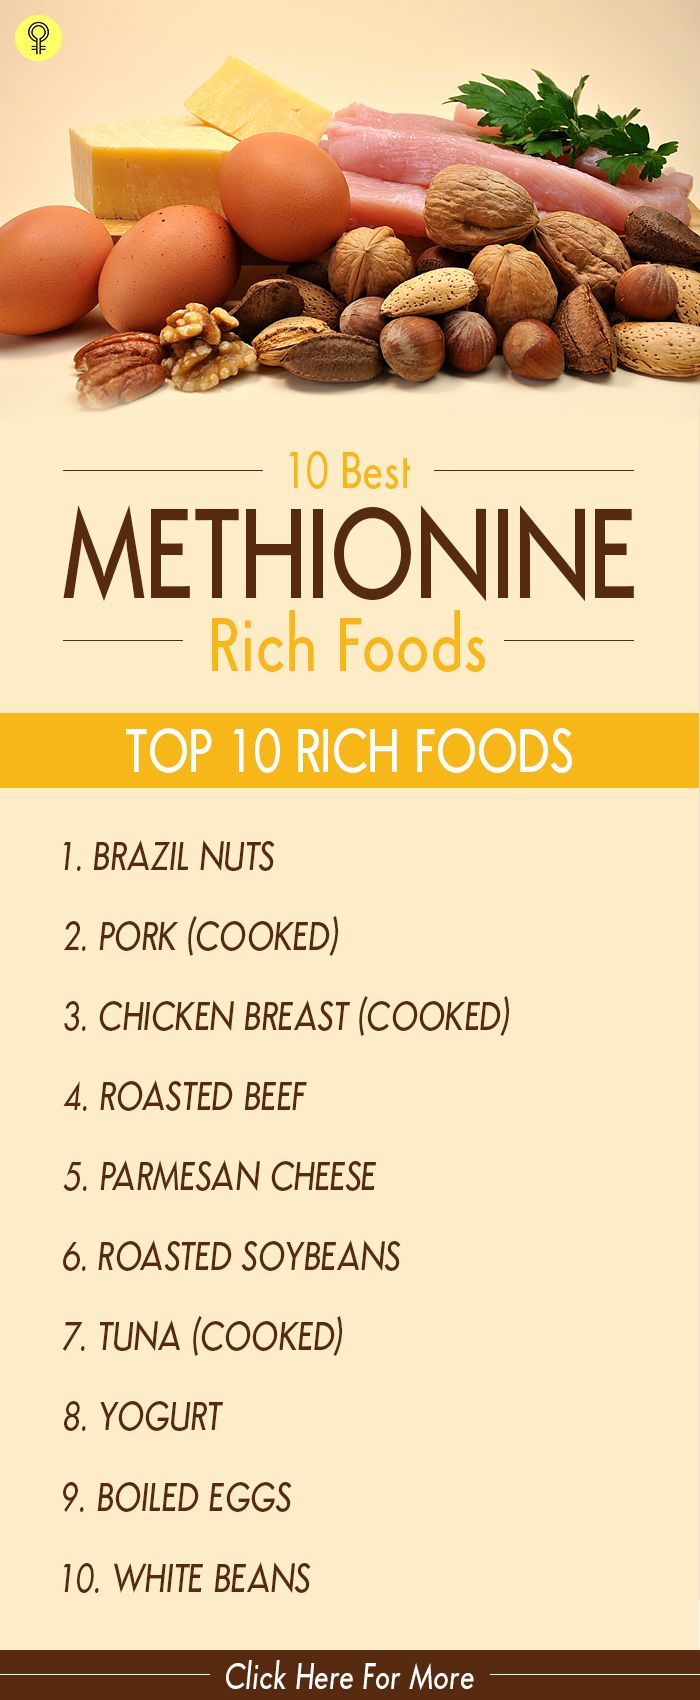 High Protein Foods Low In Methionine